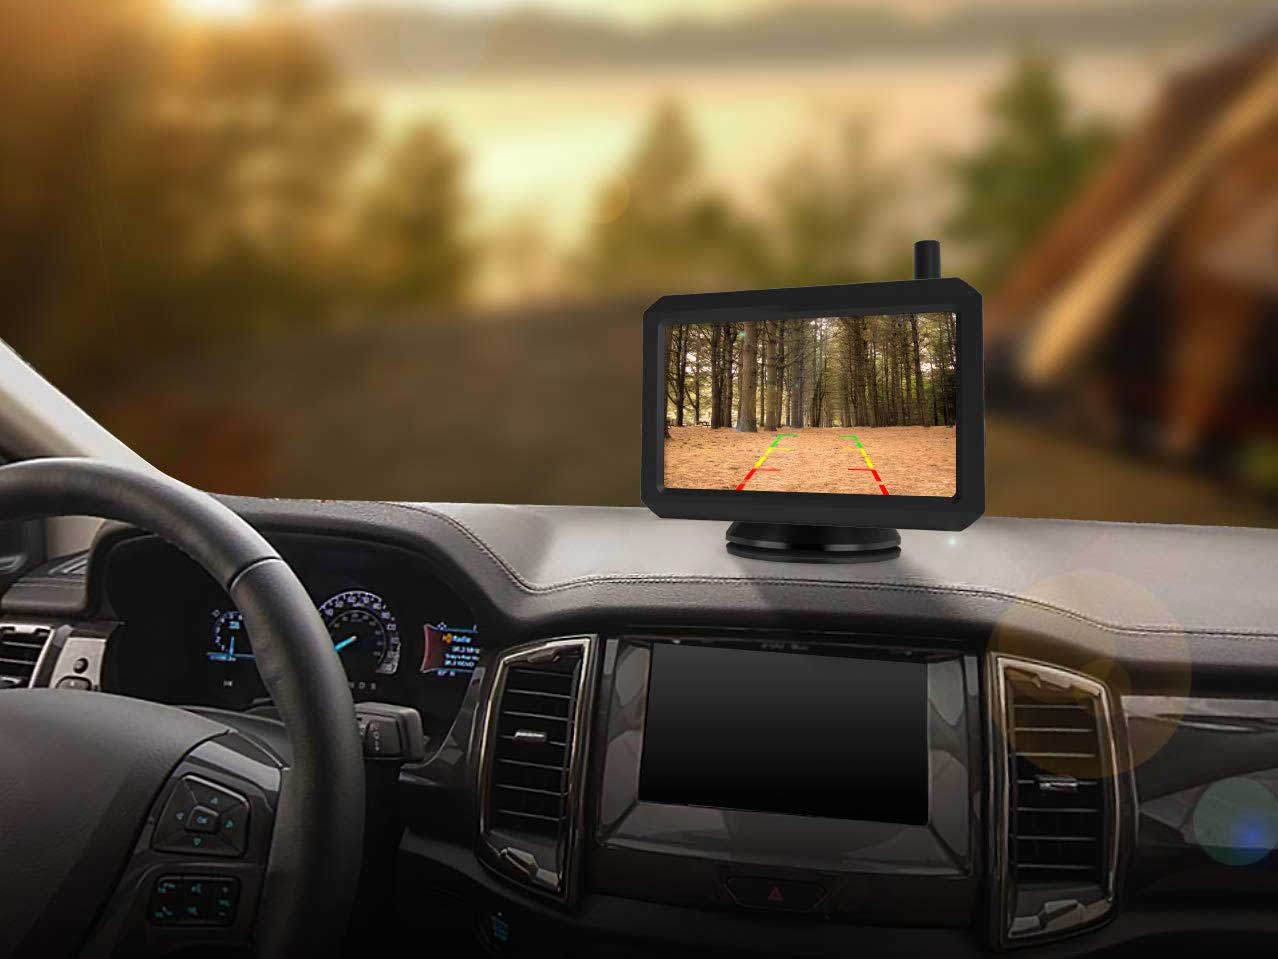 A backup camera's core function is to reassure you there's nothing behind you when backing up.